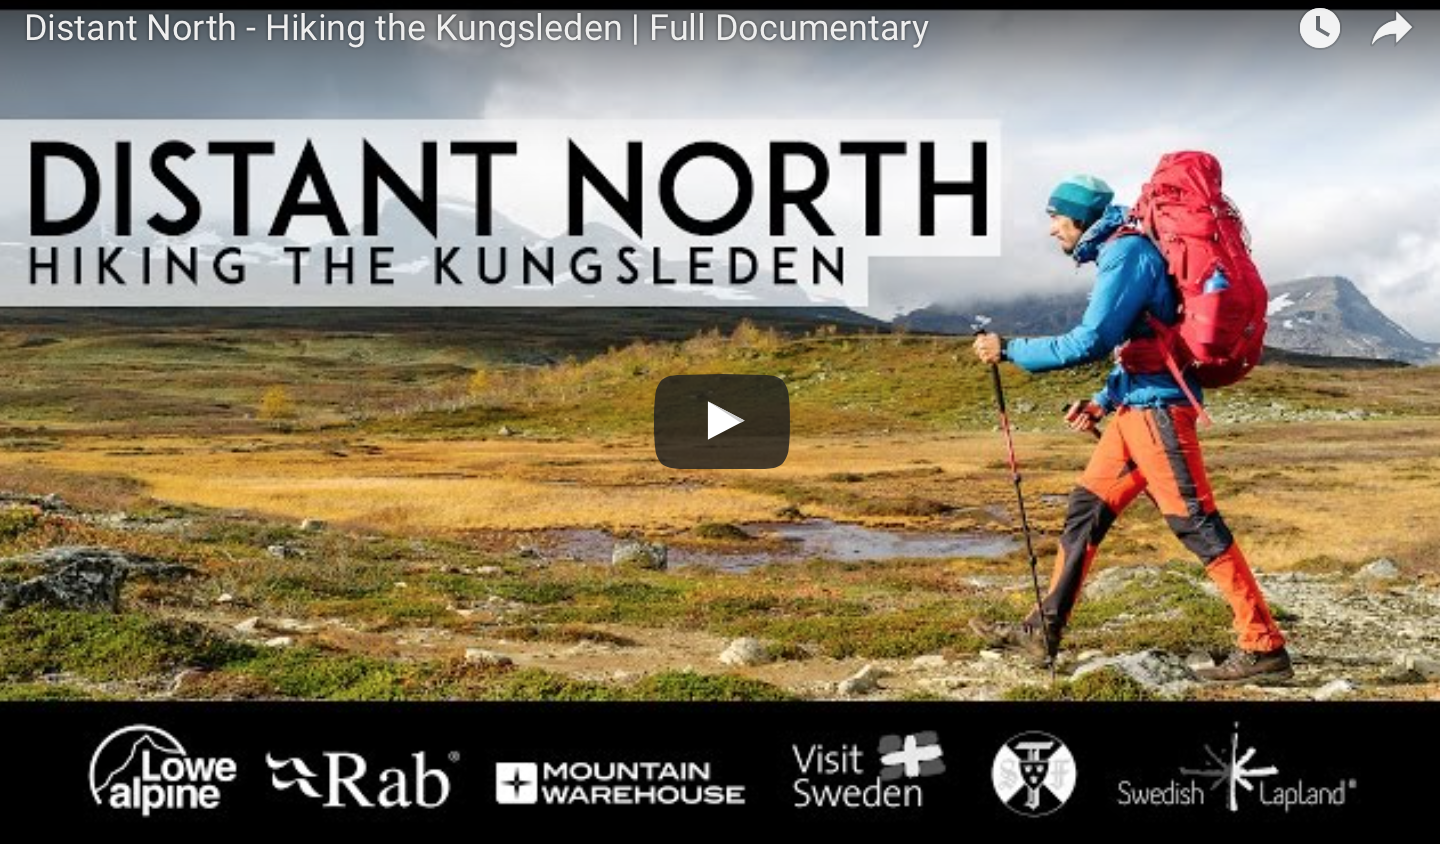 Distant North Kungsleden Youtube Documentary